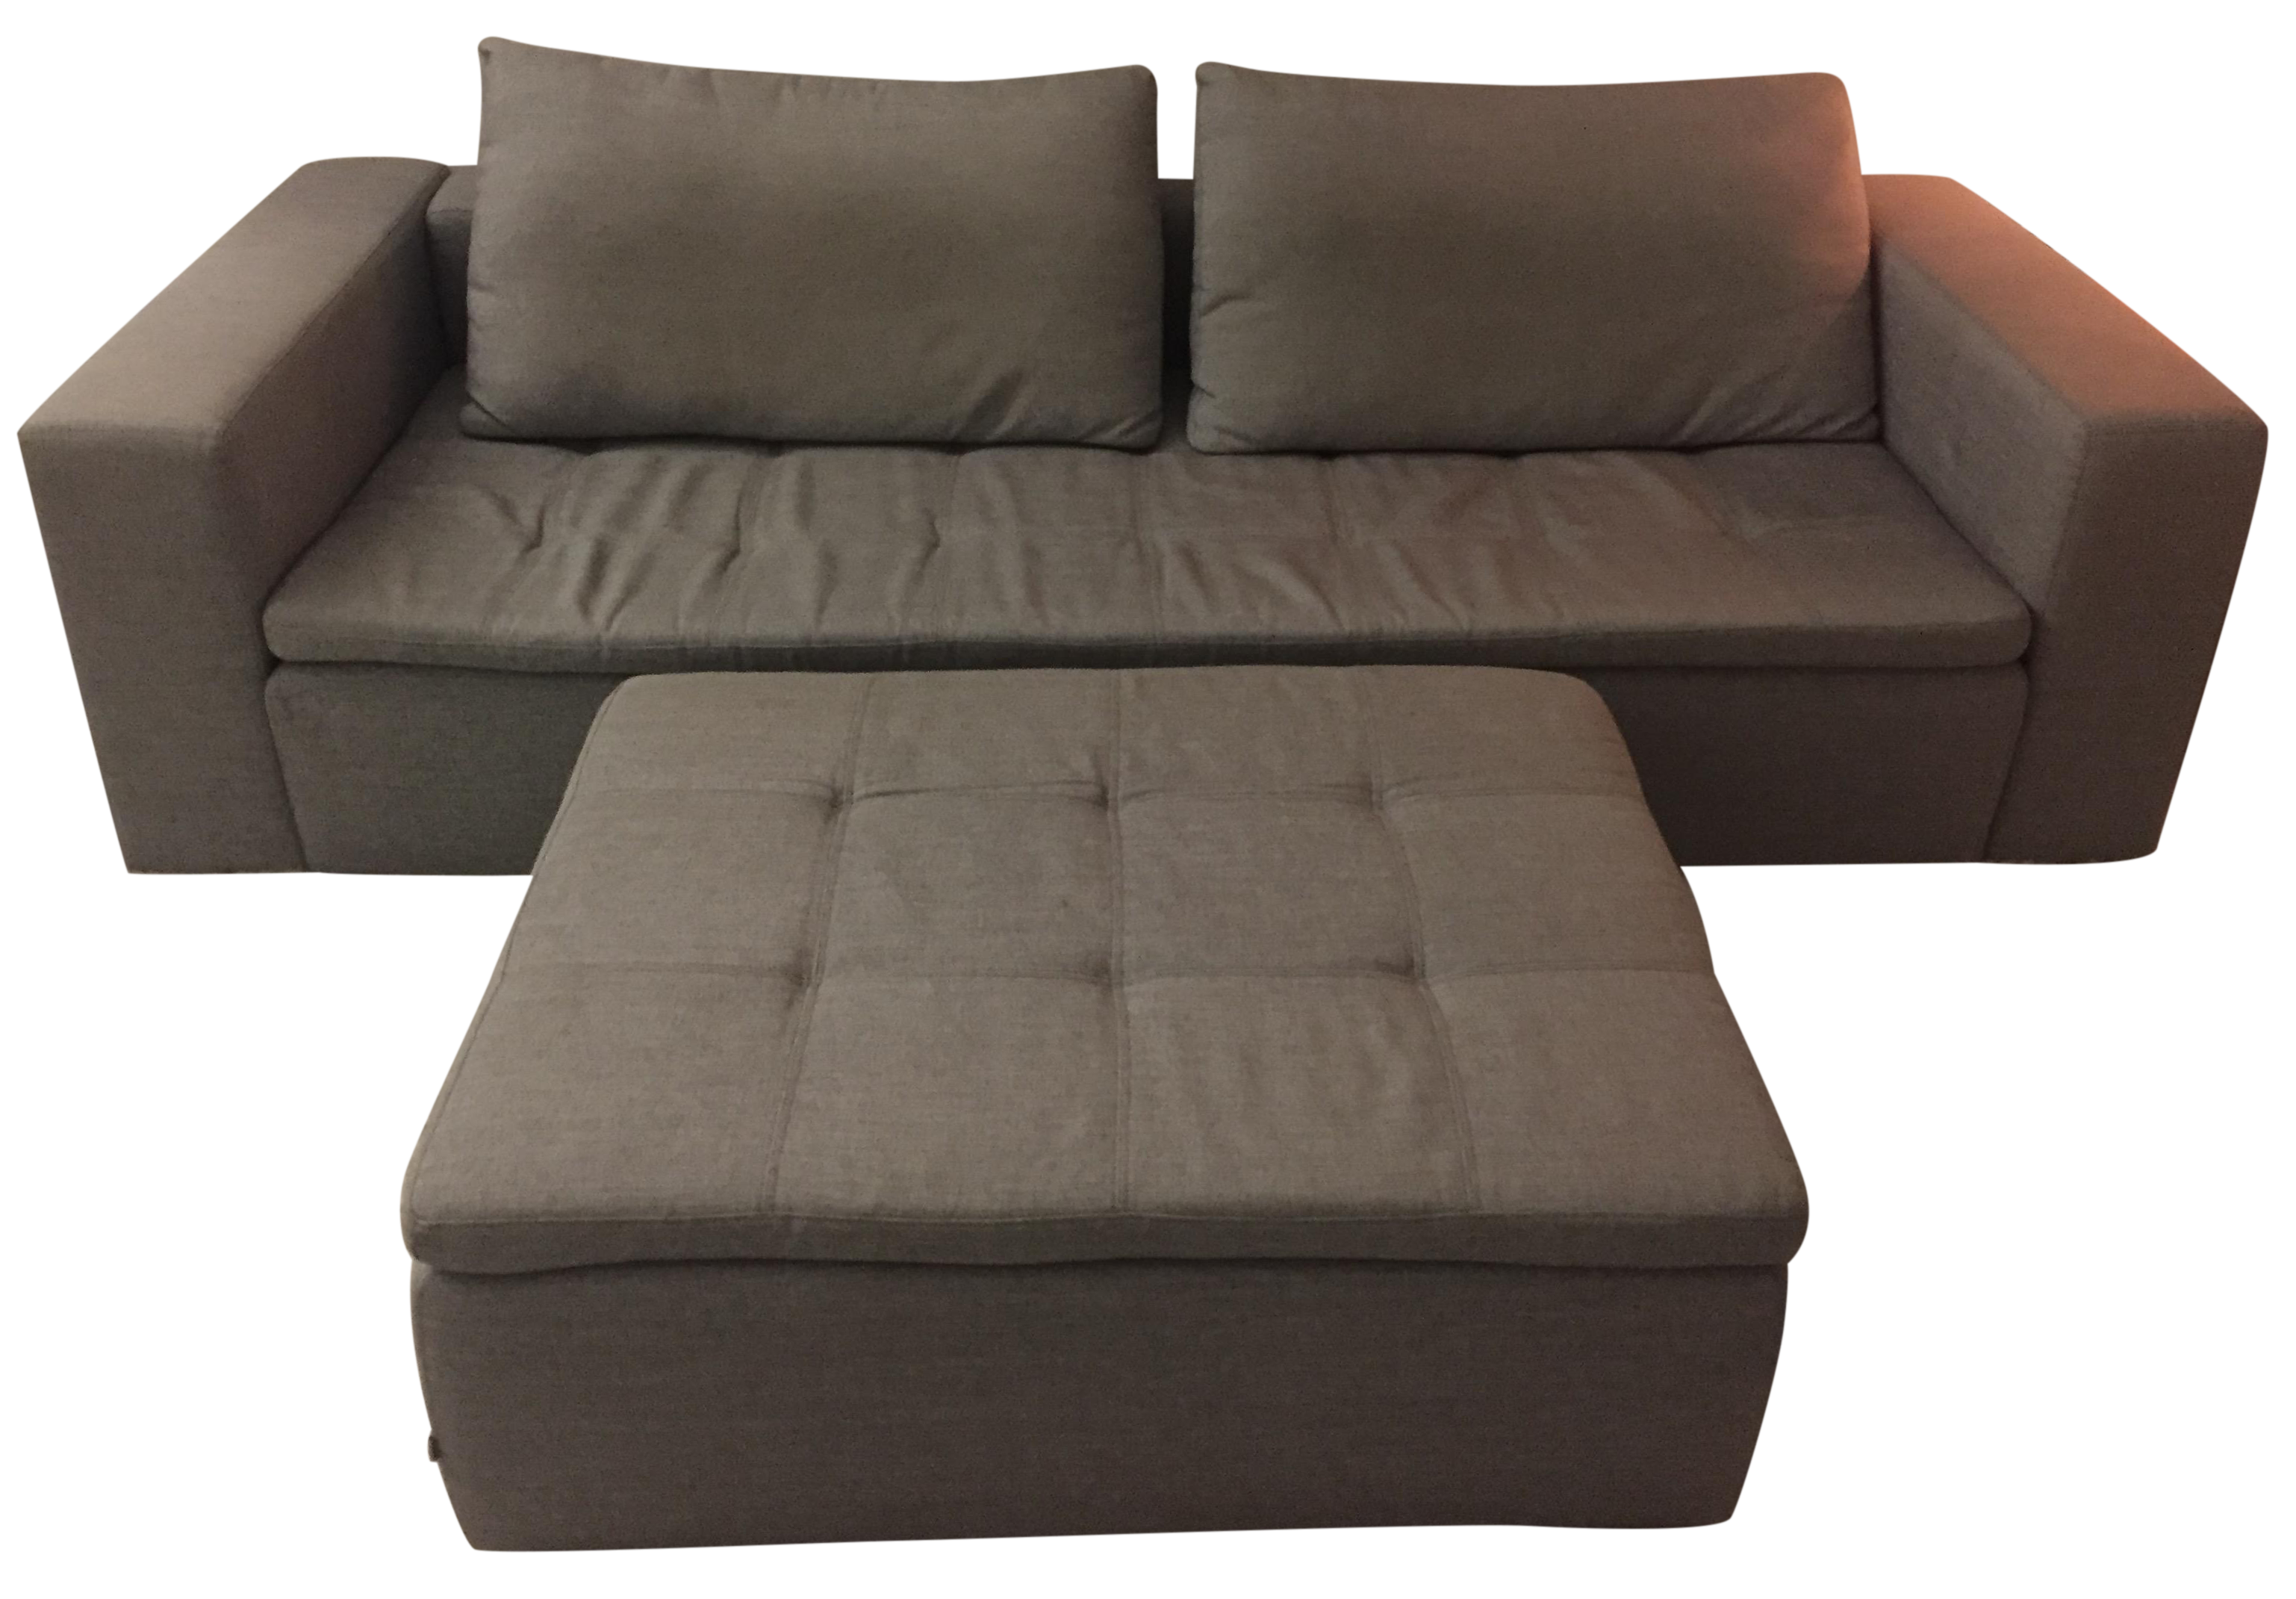 Boconcept melo sofa bed review refil sofa for Sofa bed ratings